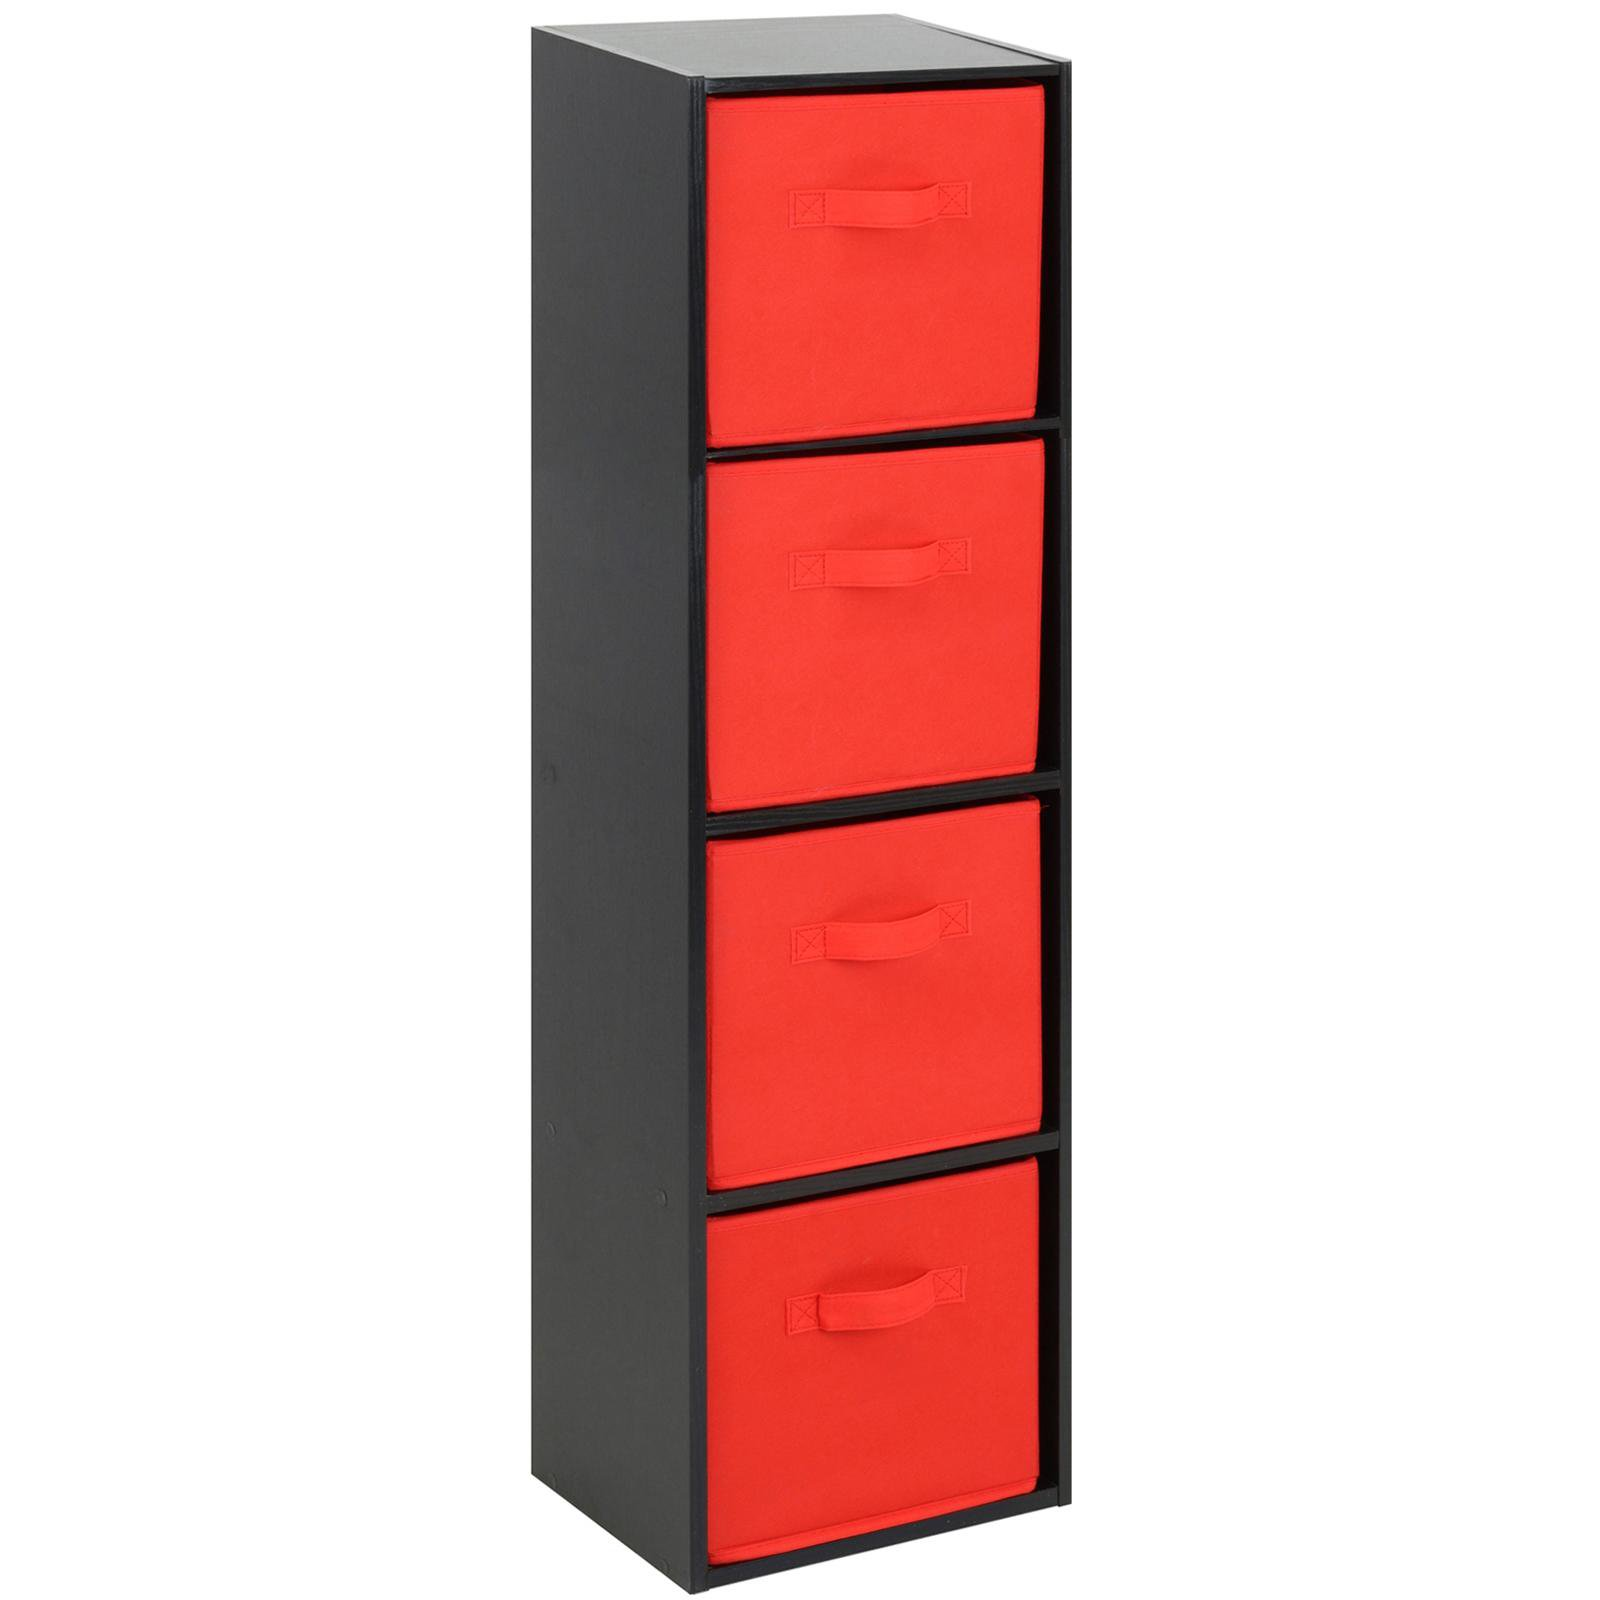 image-Hartleys Black 4 Tier Cube Storage Unit & 4 Handled Box Drawers - Red